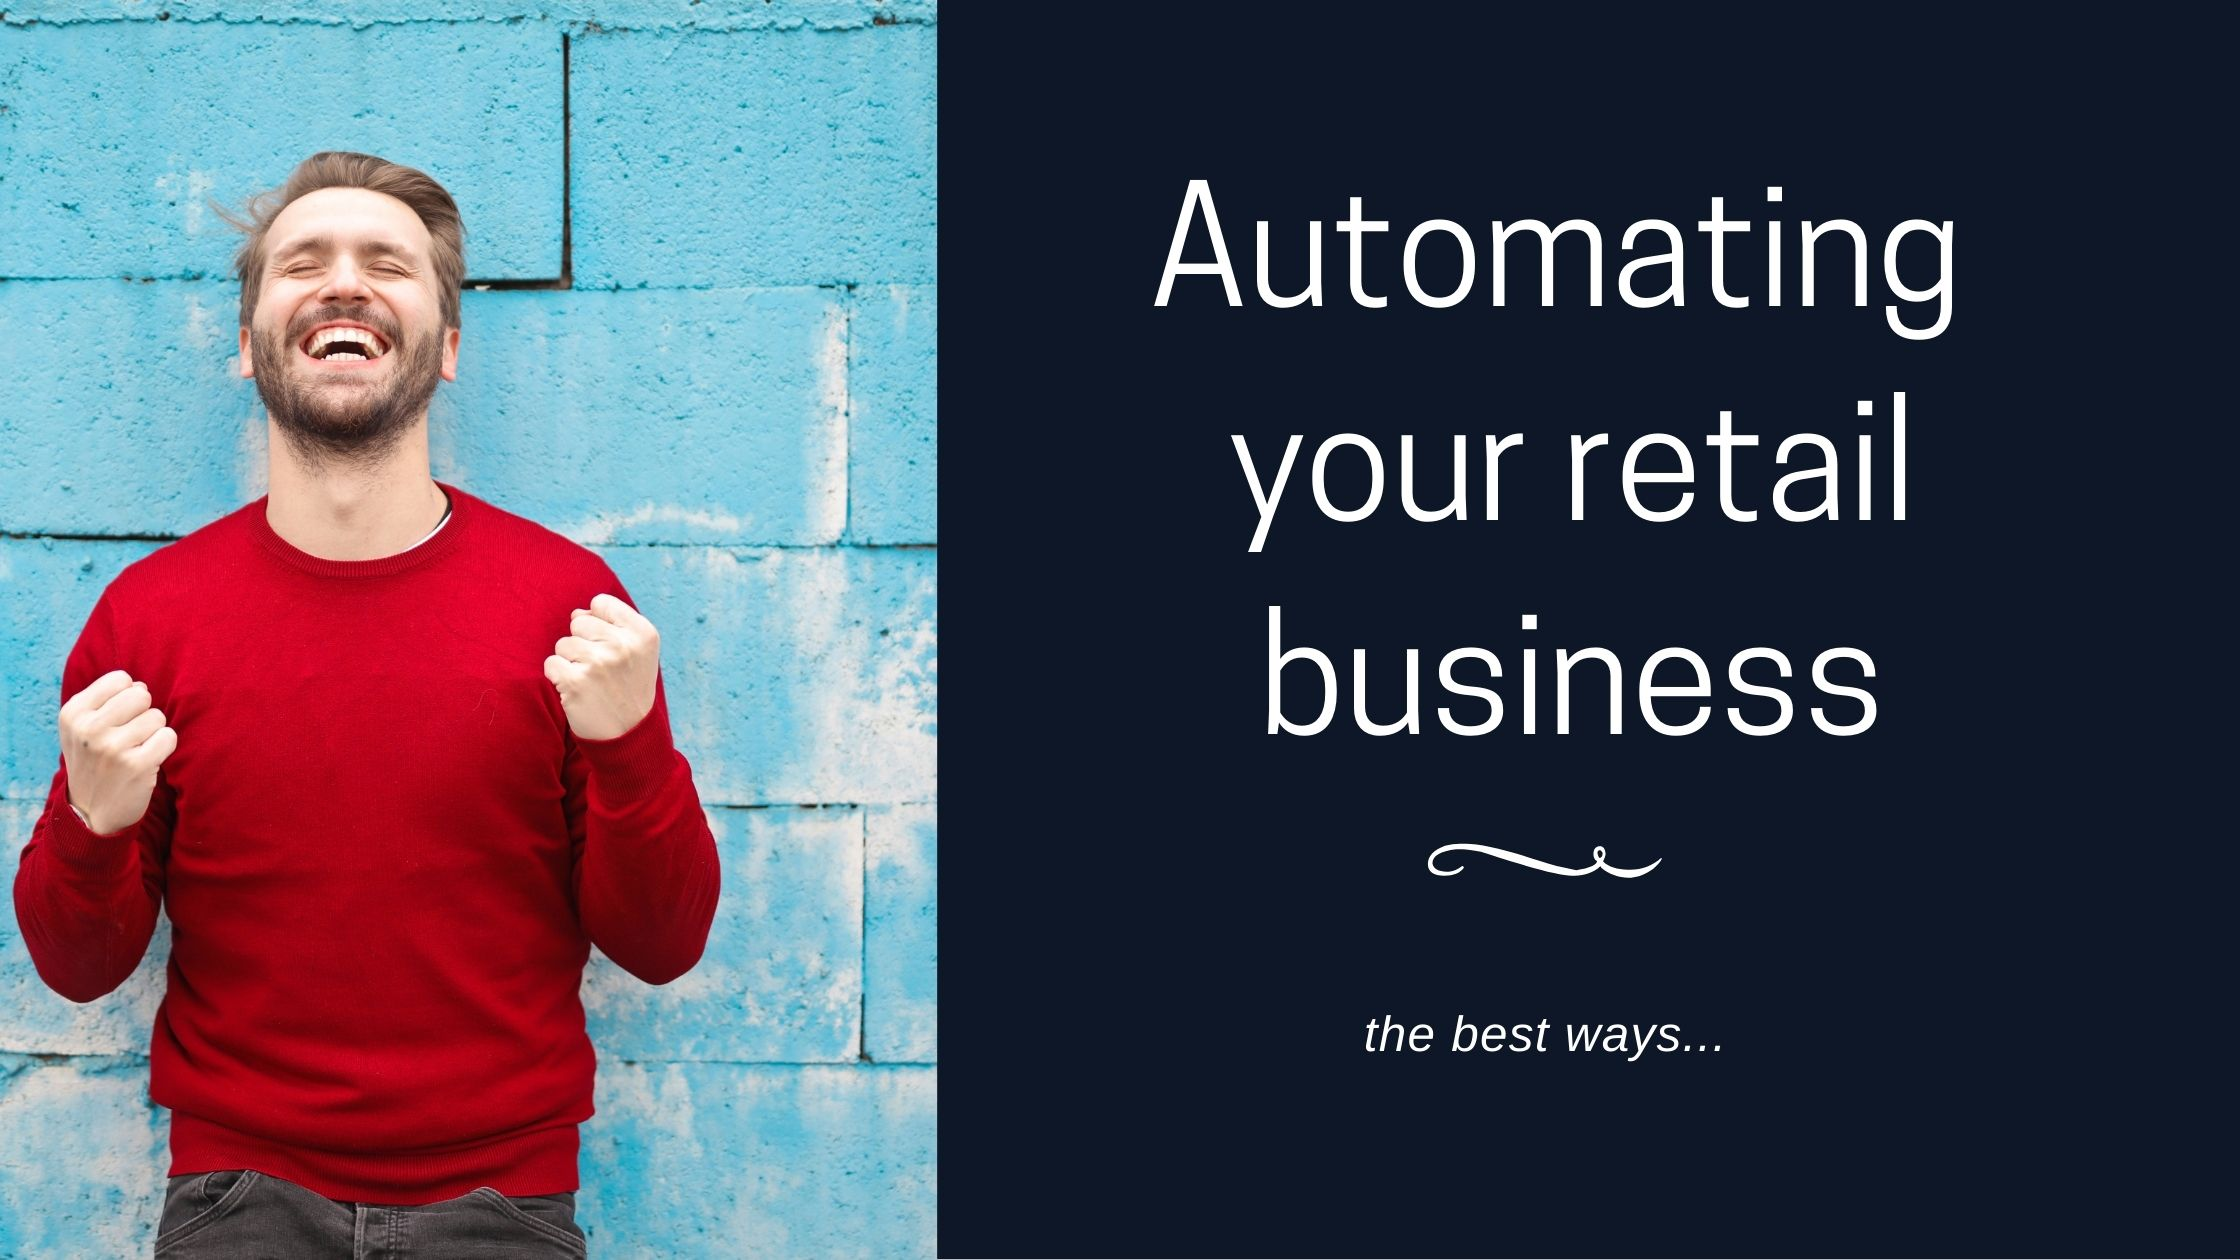 Managing retail business automating